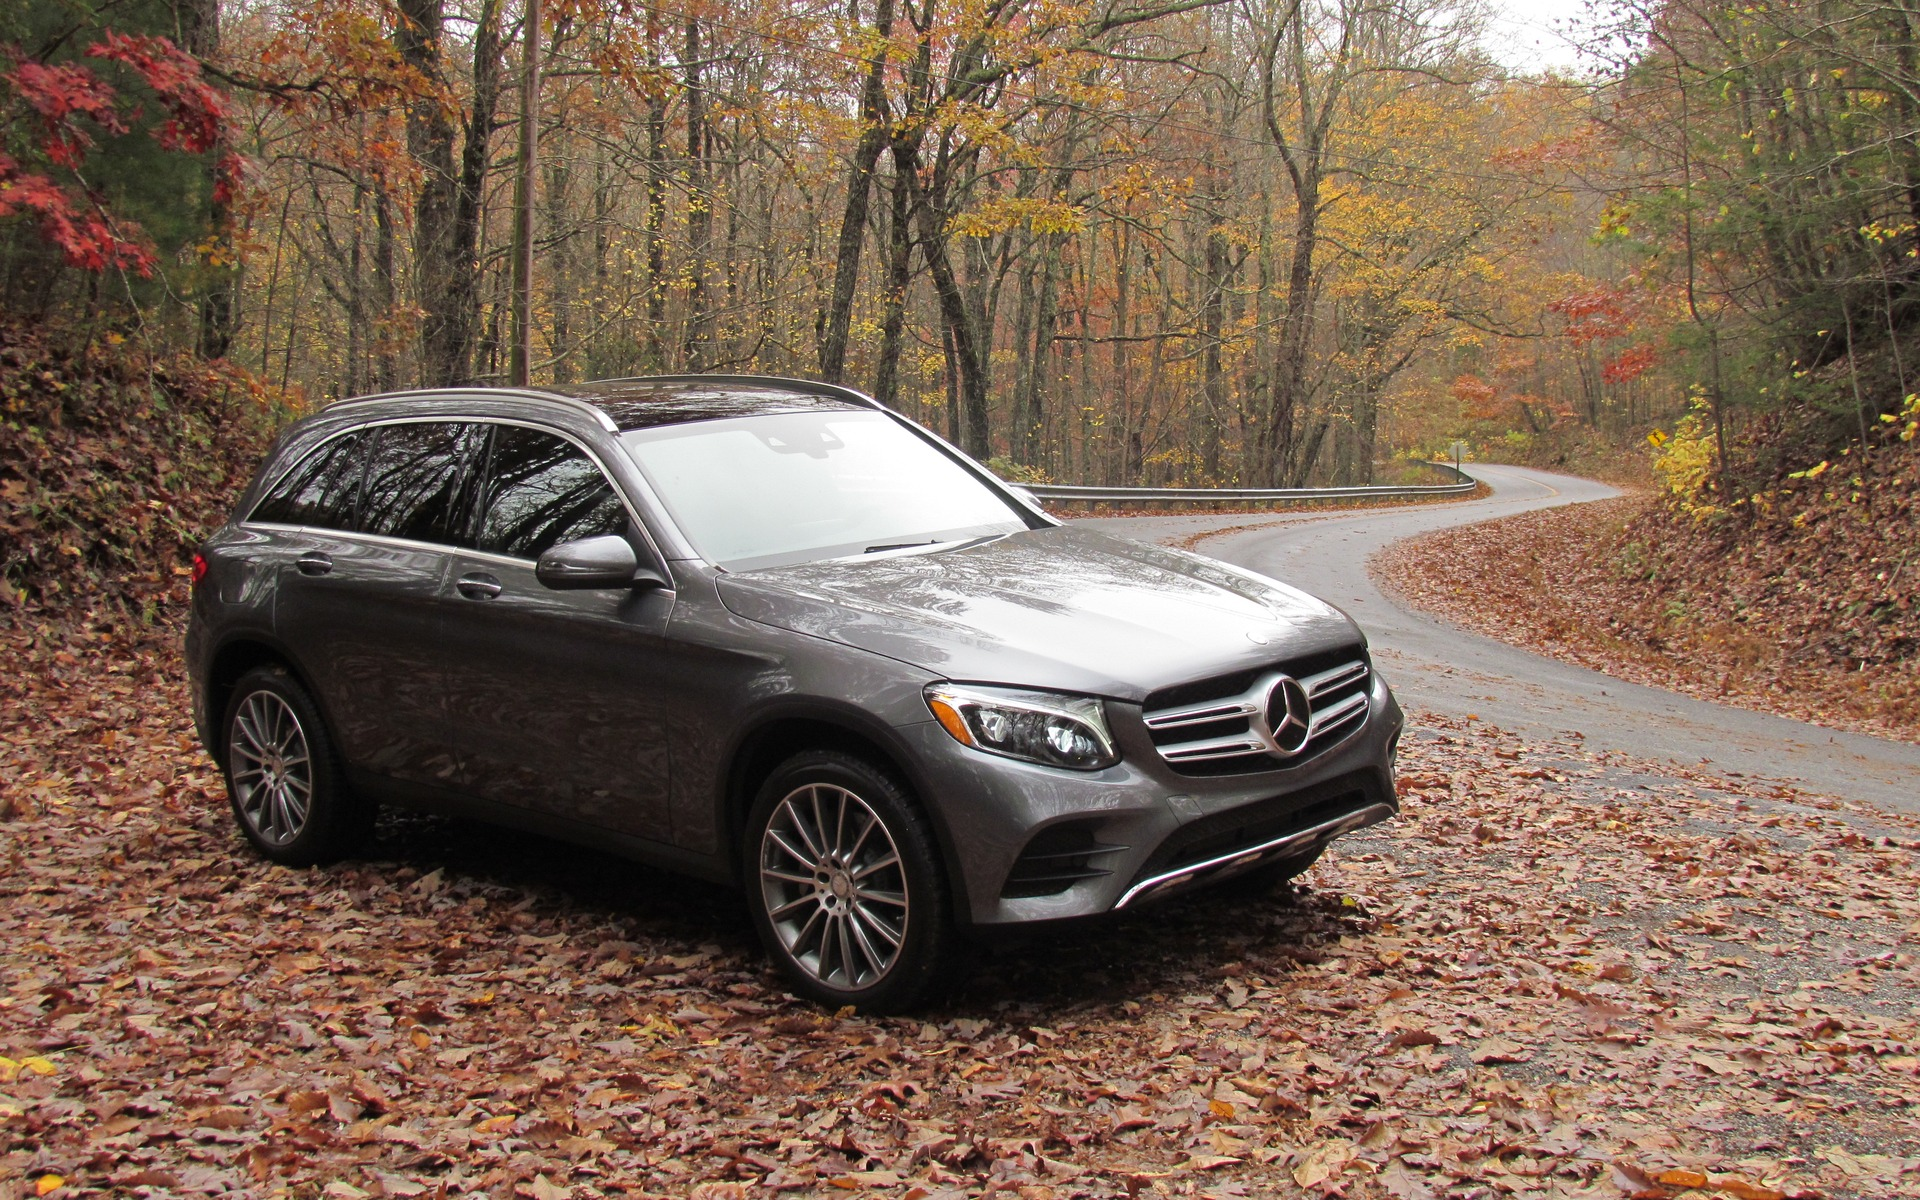 2016 Mercedes Benz GLC 300 4MATIC Blending In The Car Guide